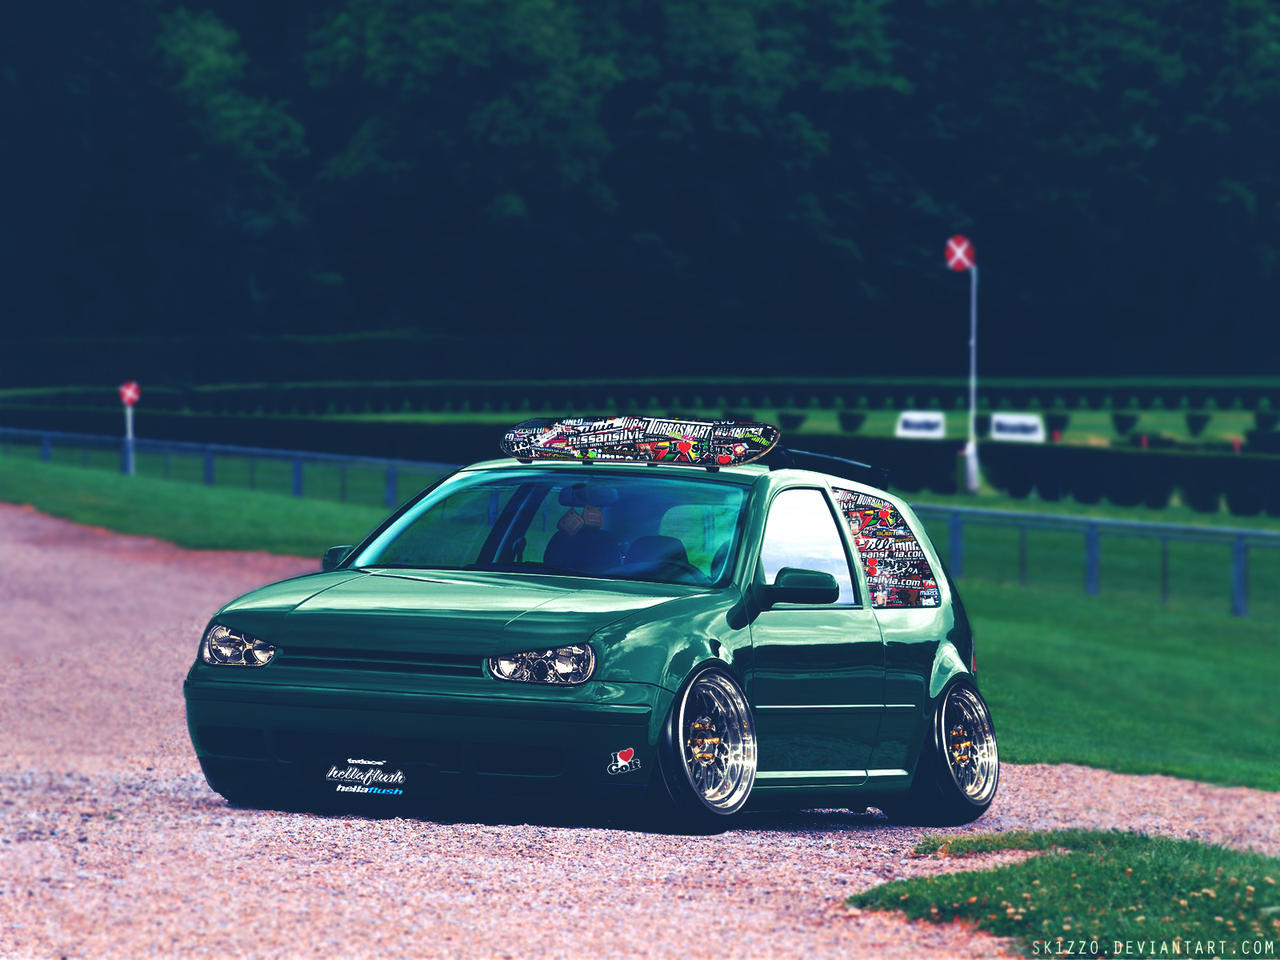 Hellaflush Vw Golf Iv By Sk1zzo On Deviantart